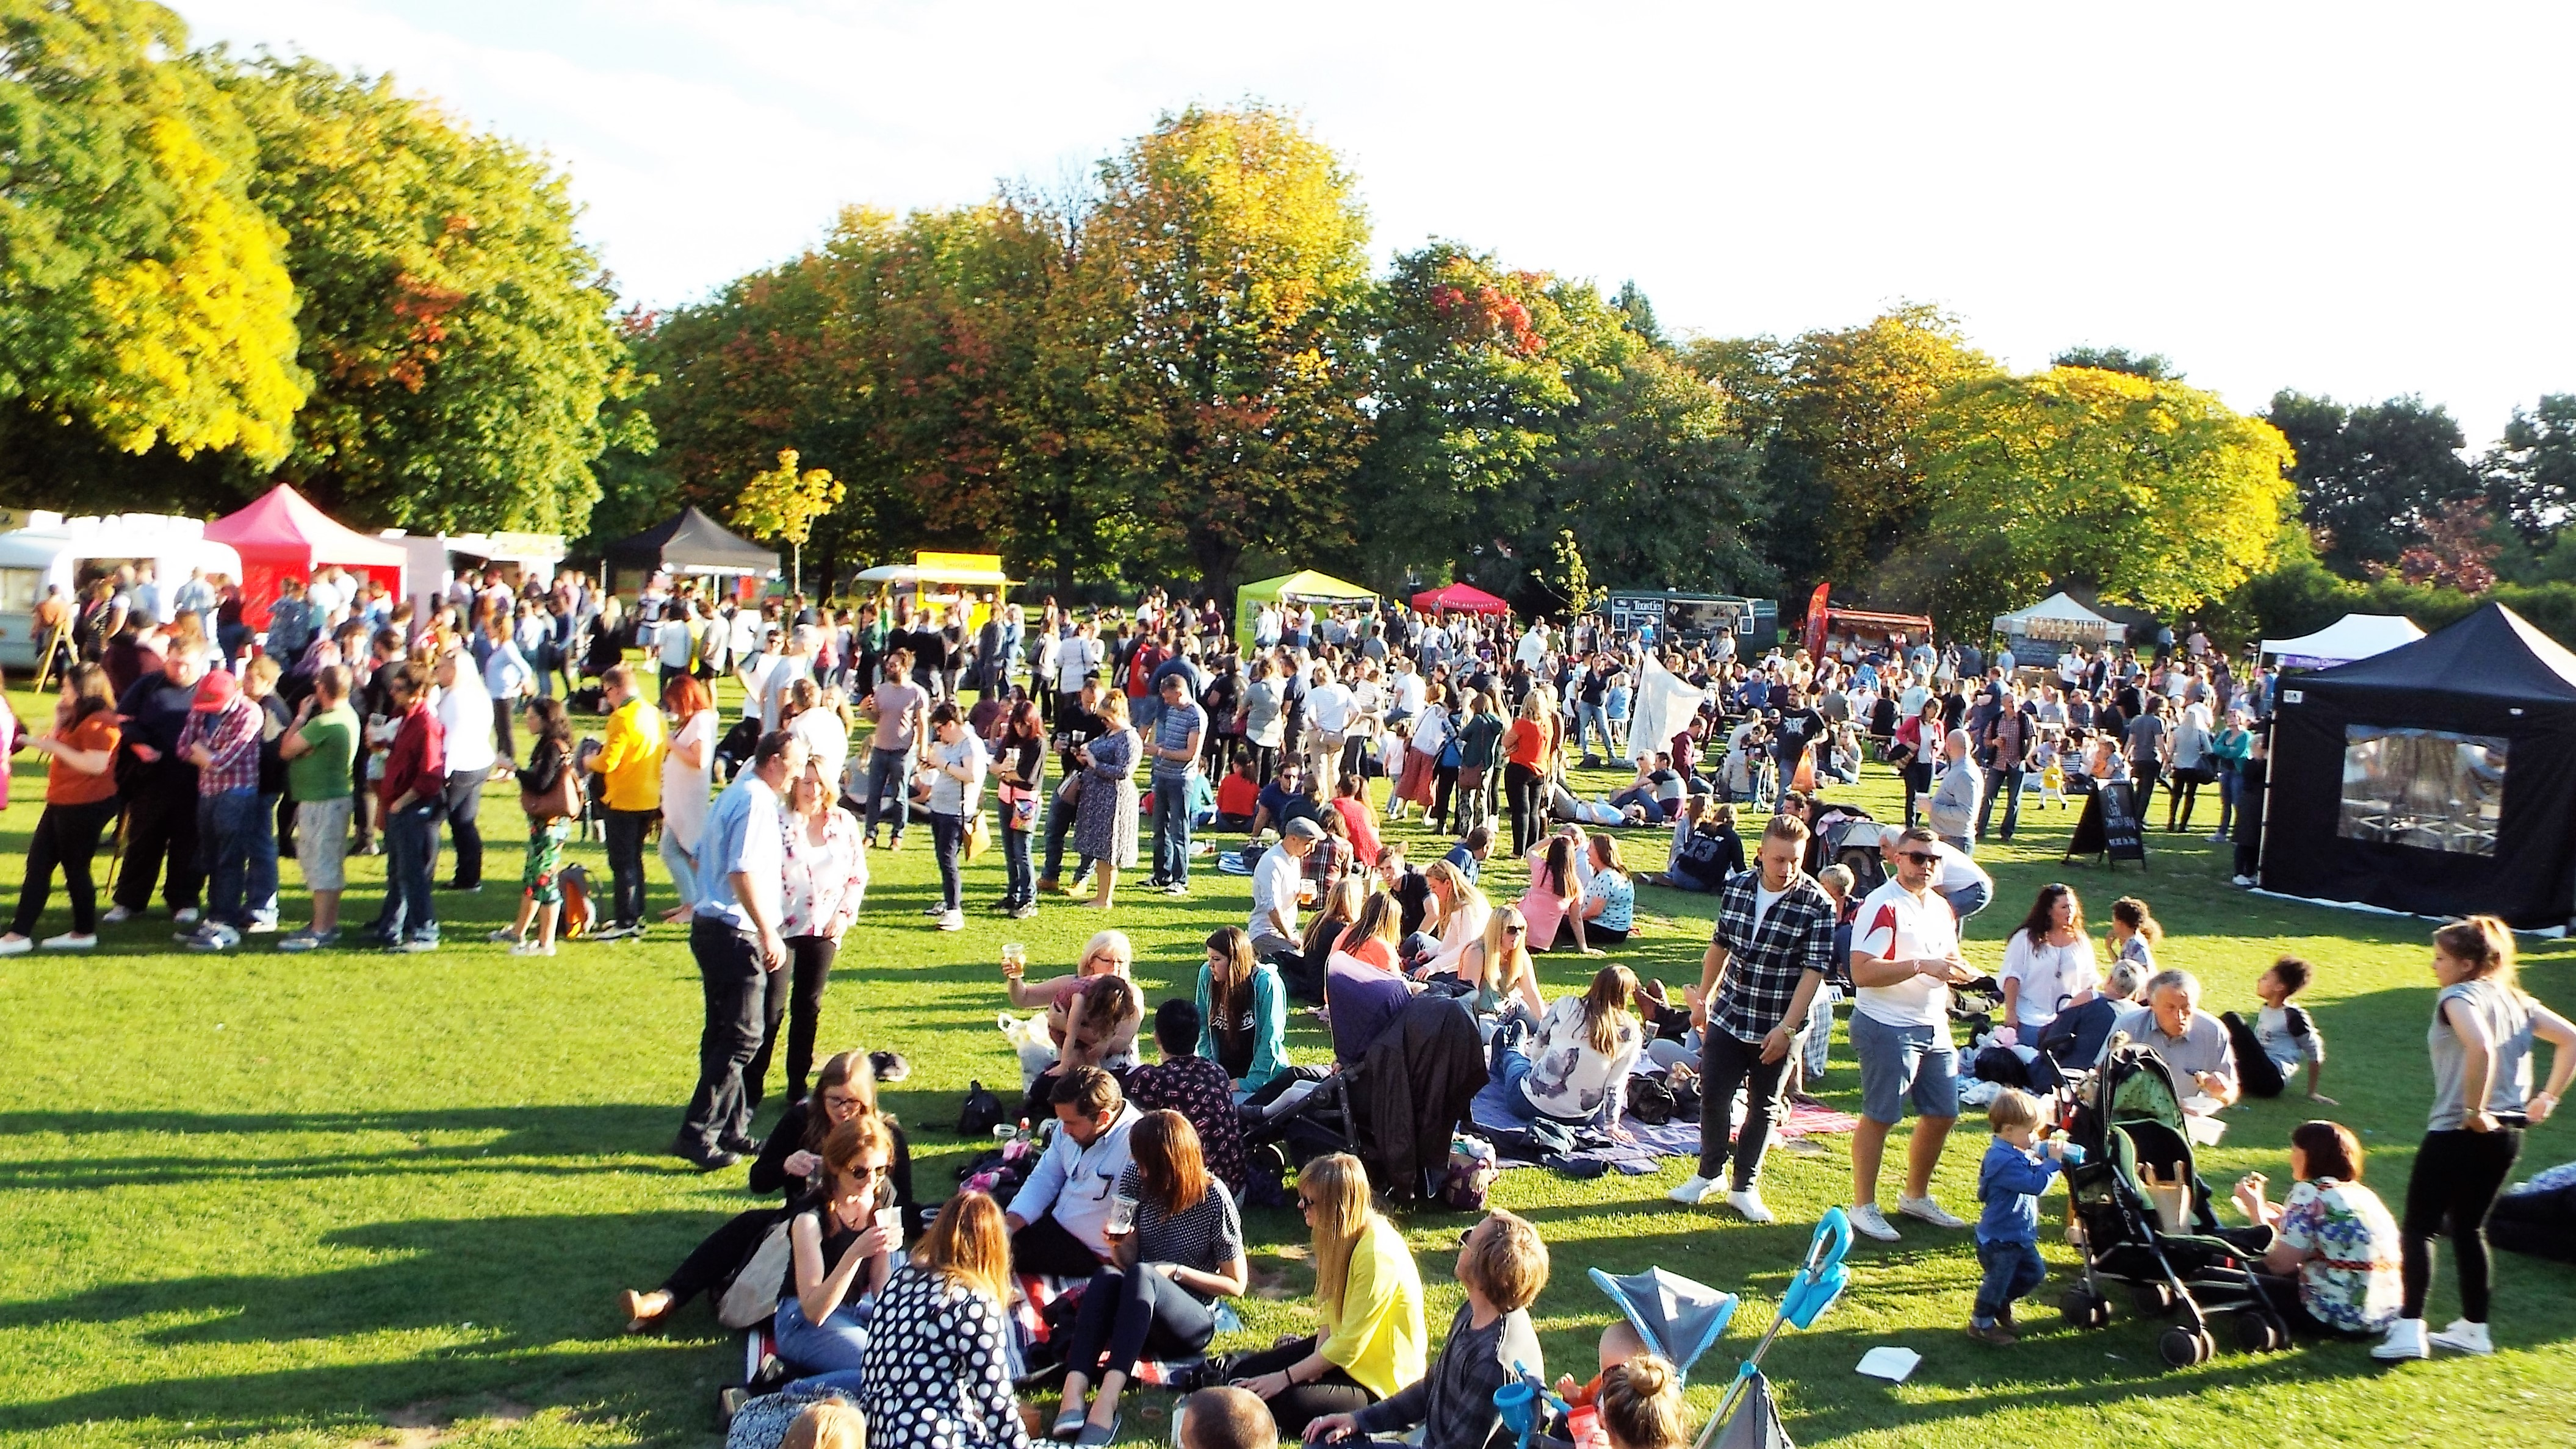 Provisions by the Pavilion – Bournville Ale & Streetfood Festival